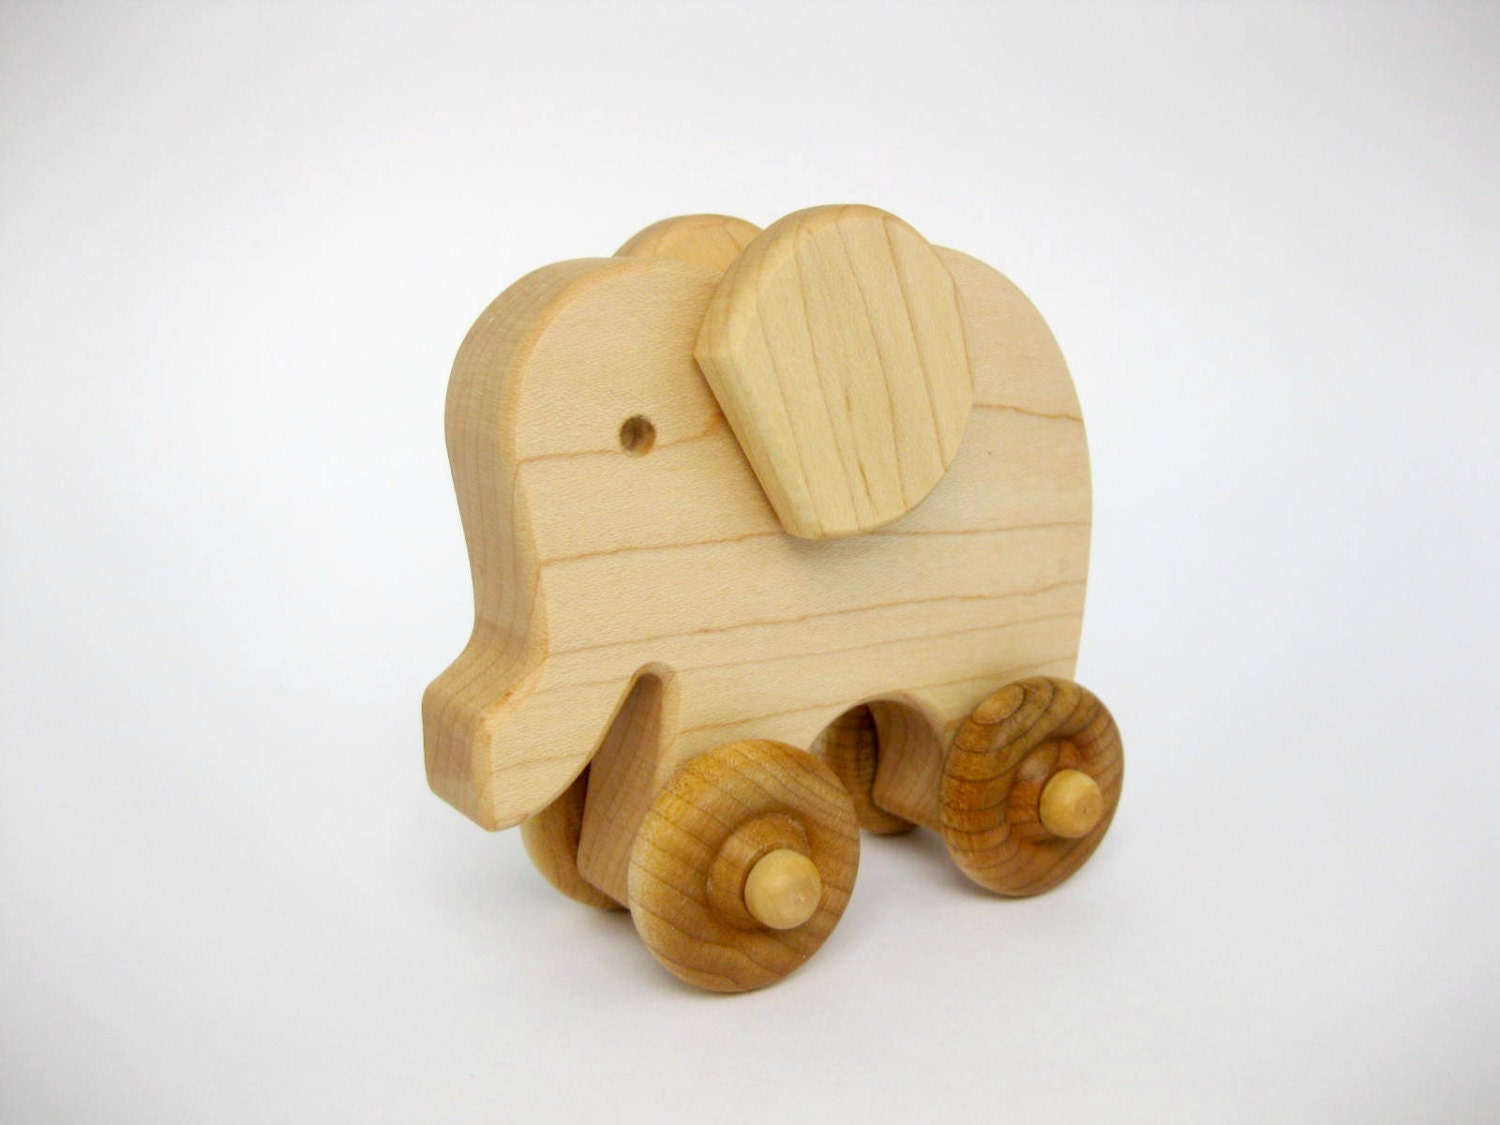 Wooden Toy Elephant Push Toy wood toddler toy by GreenBeanToys